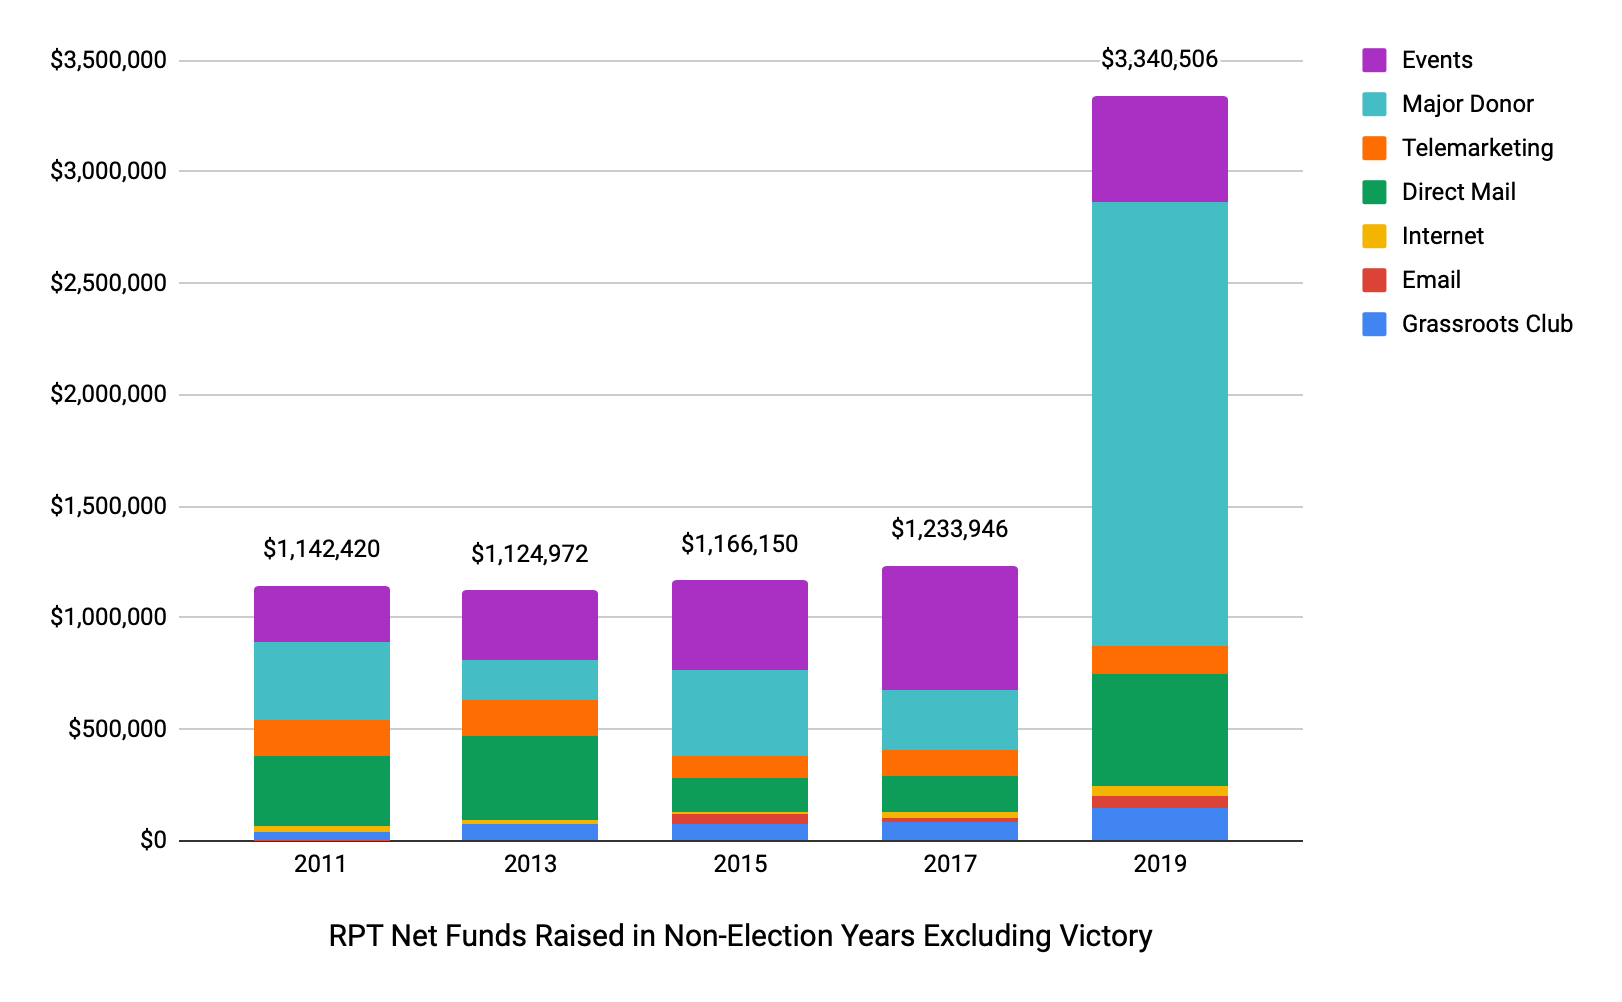 Under Chairman Dickey's leadership, Republican Party of Texas enjoyed gigantic 2019 fundraising success; Dickey's opponent fails to attend debate